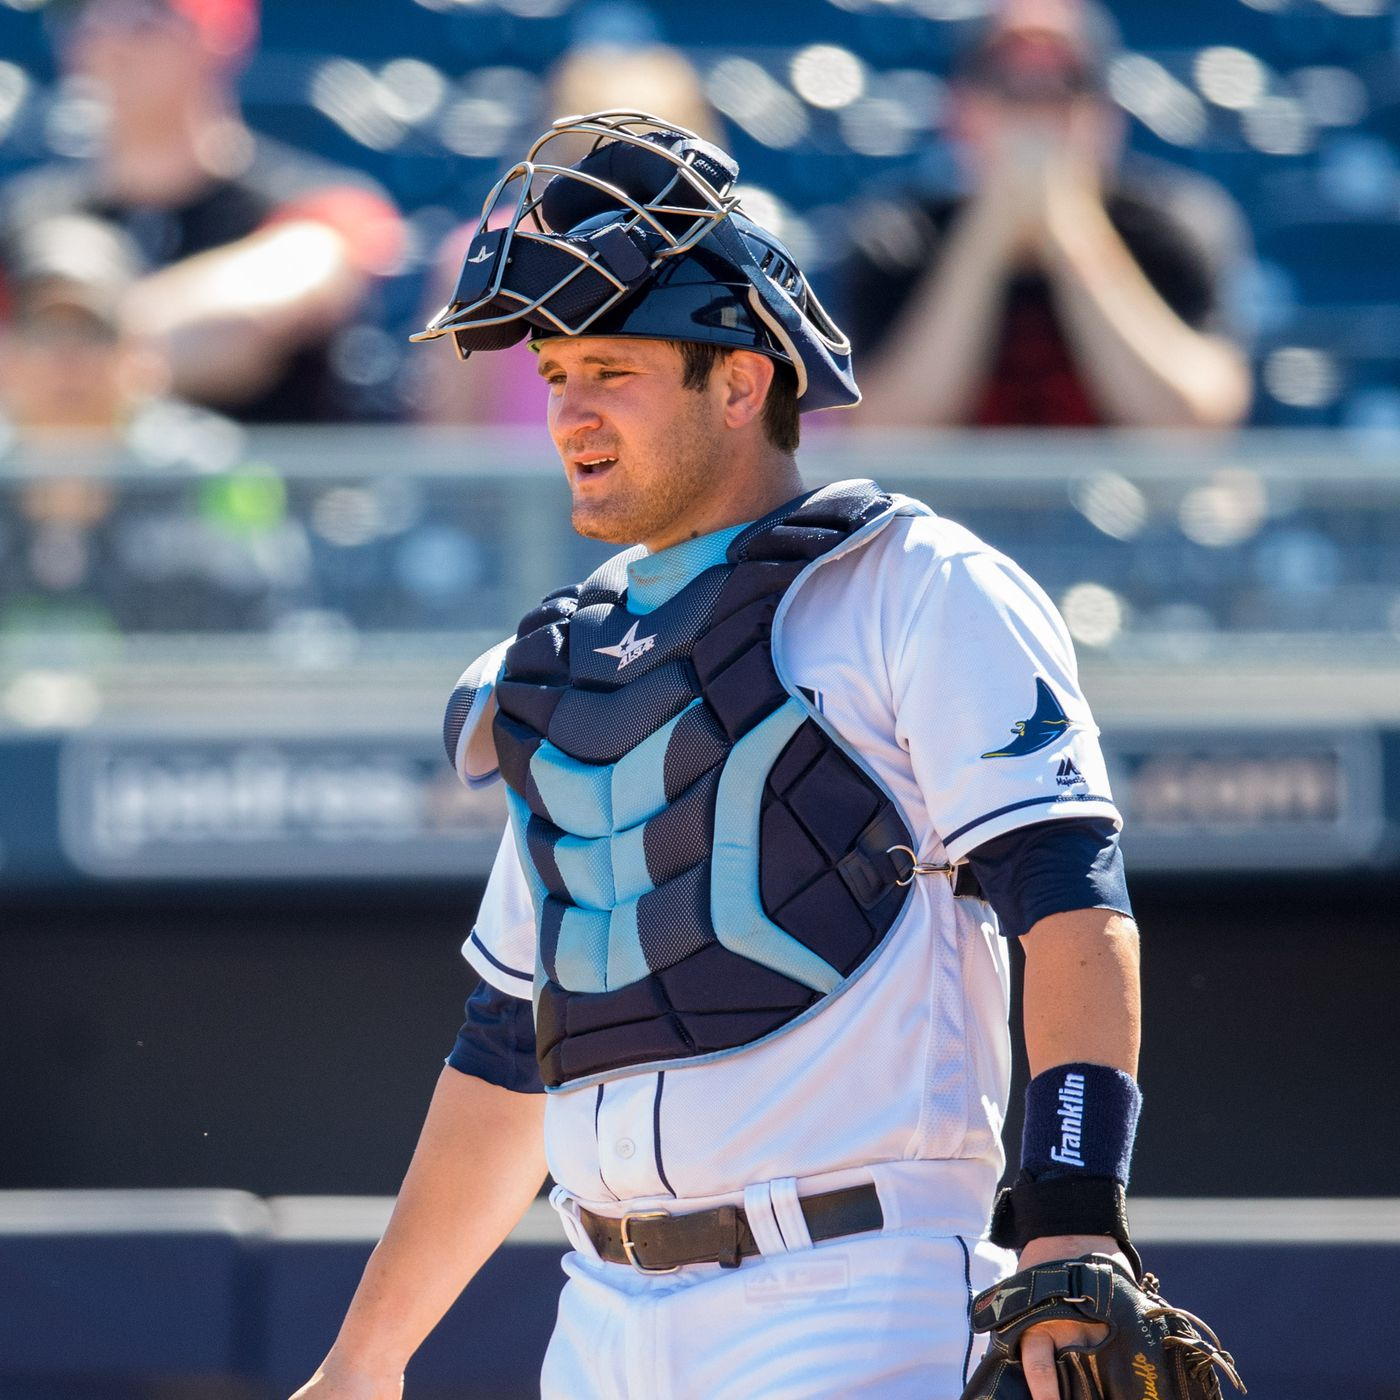 77ff4fb57 Rays 2017 Top Prospects by Position  Catchers - DRaysBay